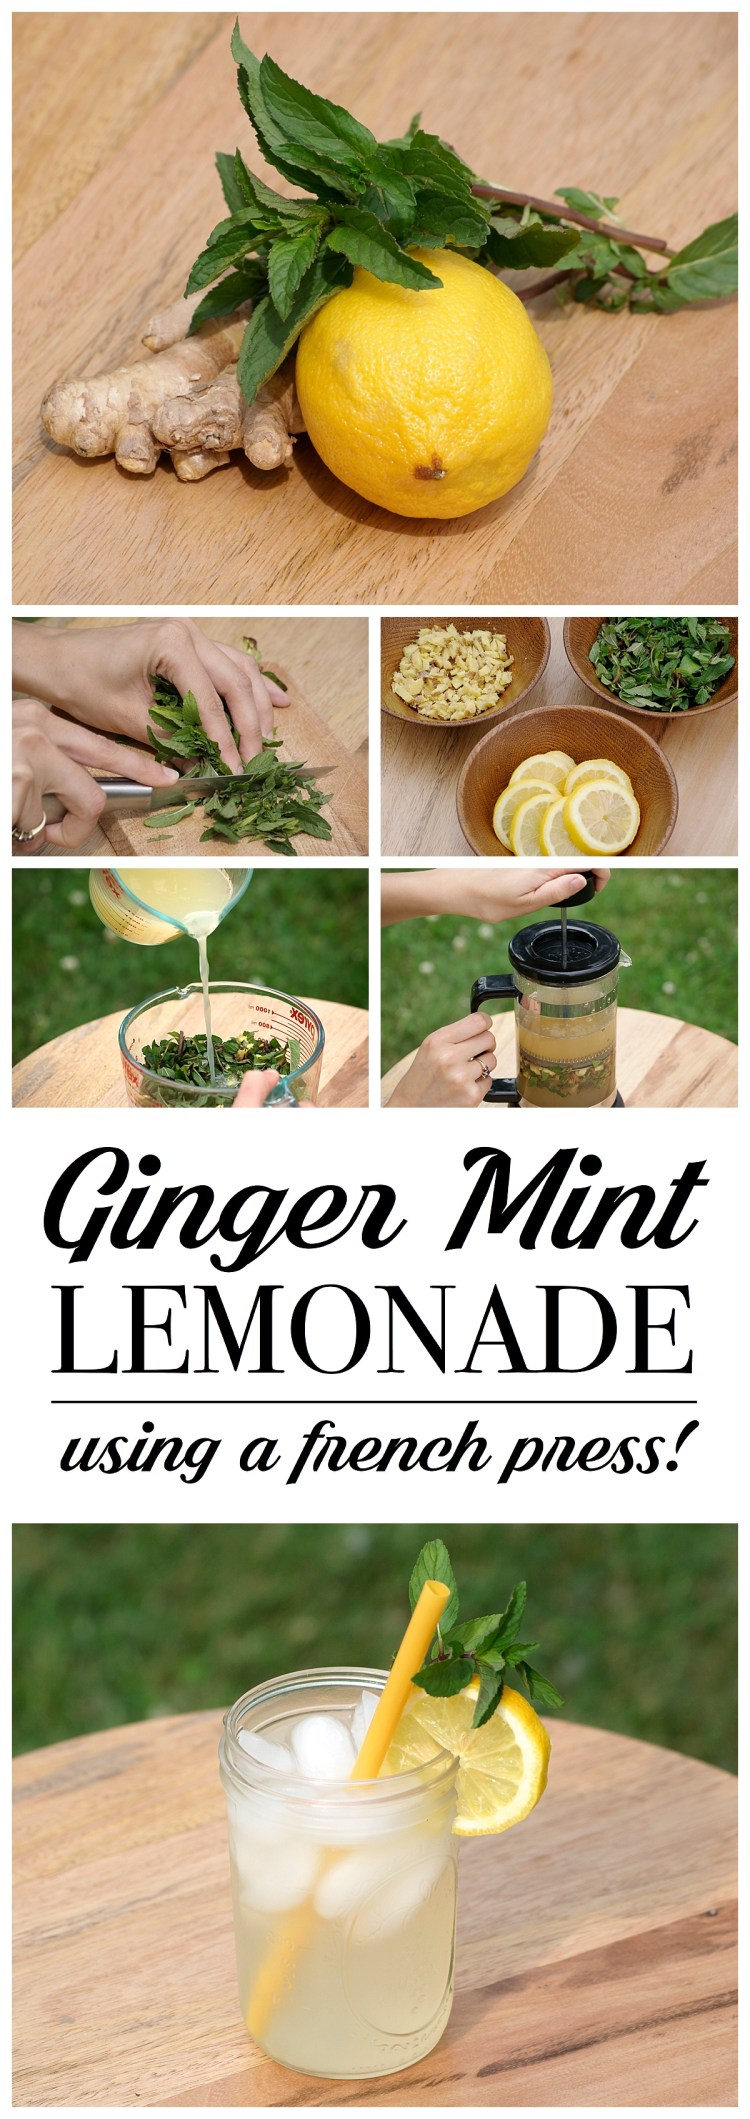 Ginger Mint Lemonade | Detox Drink | Drink Recipe | Summer Drinks | Party Ideas | Cookout | Outdoor BBQ | Refresh with this homemade Ginger Mint Lemonade recipe! The blog shows you the trick of using a french press to get maximum flavor!! | Six Clever Sisters